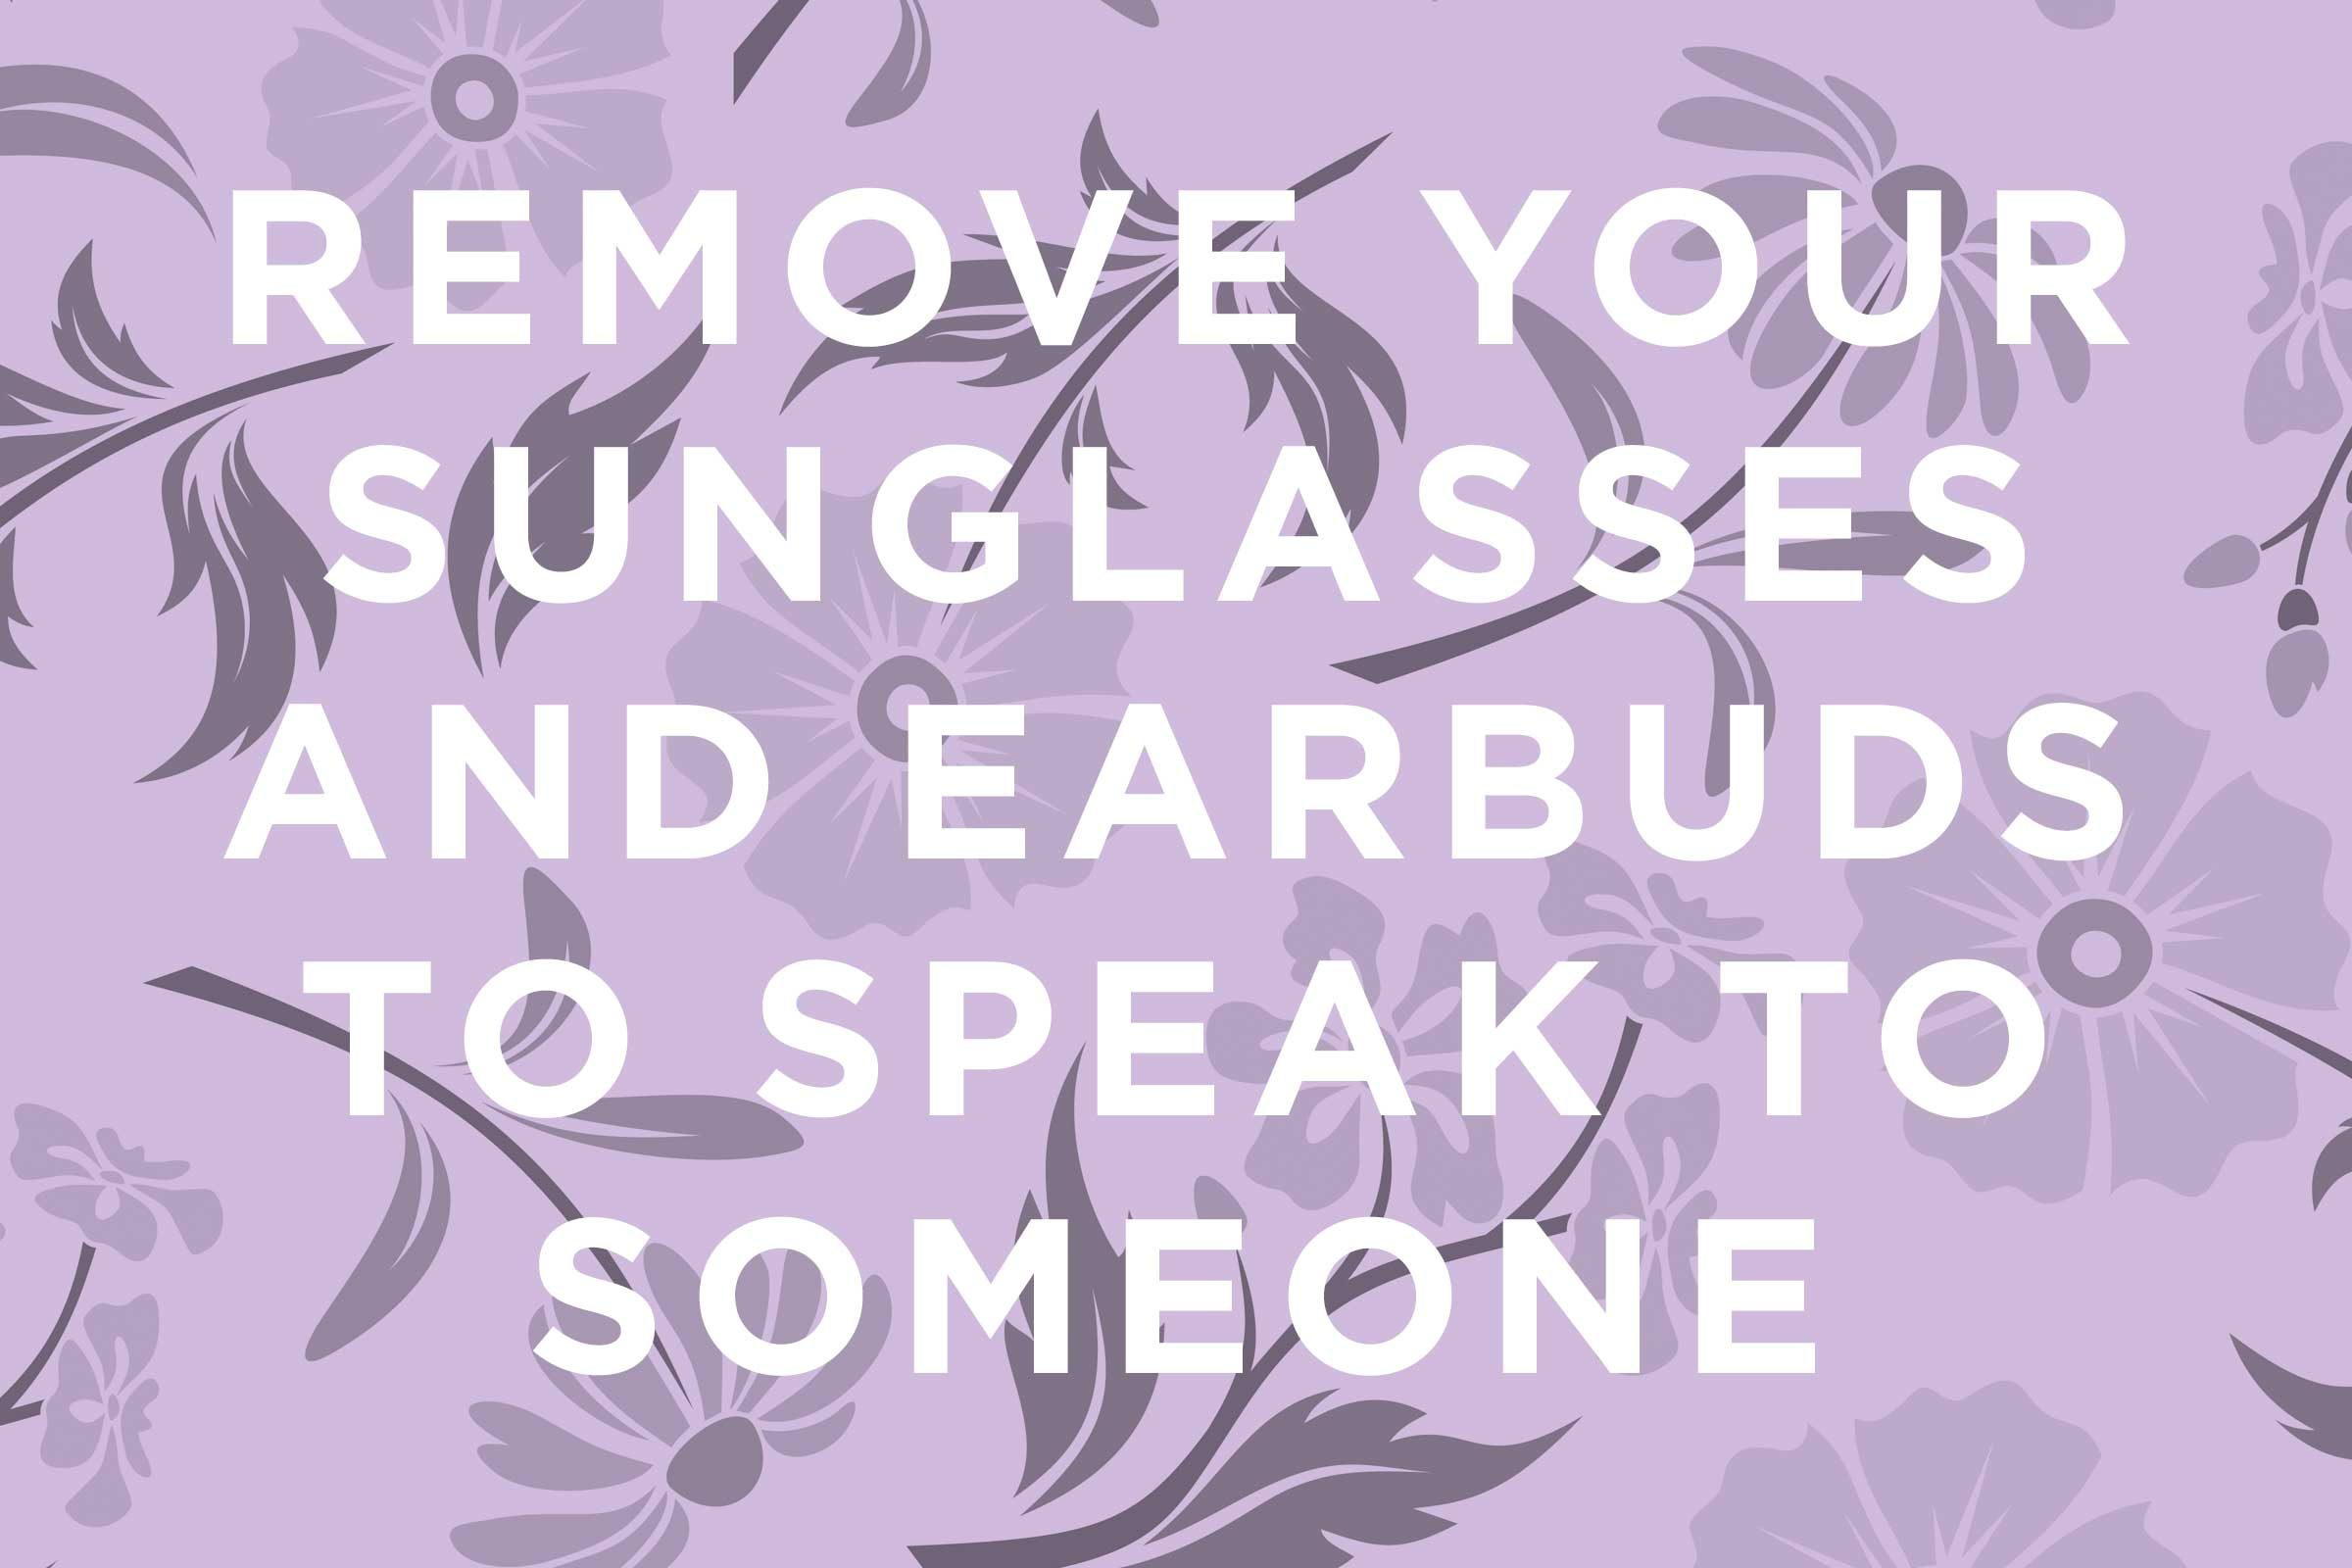 This Is Sunglasses Etiquette Many People Miss: